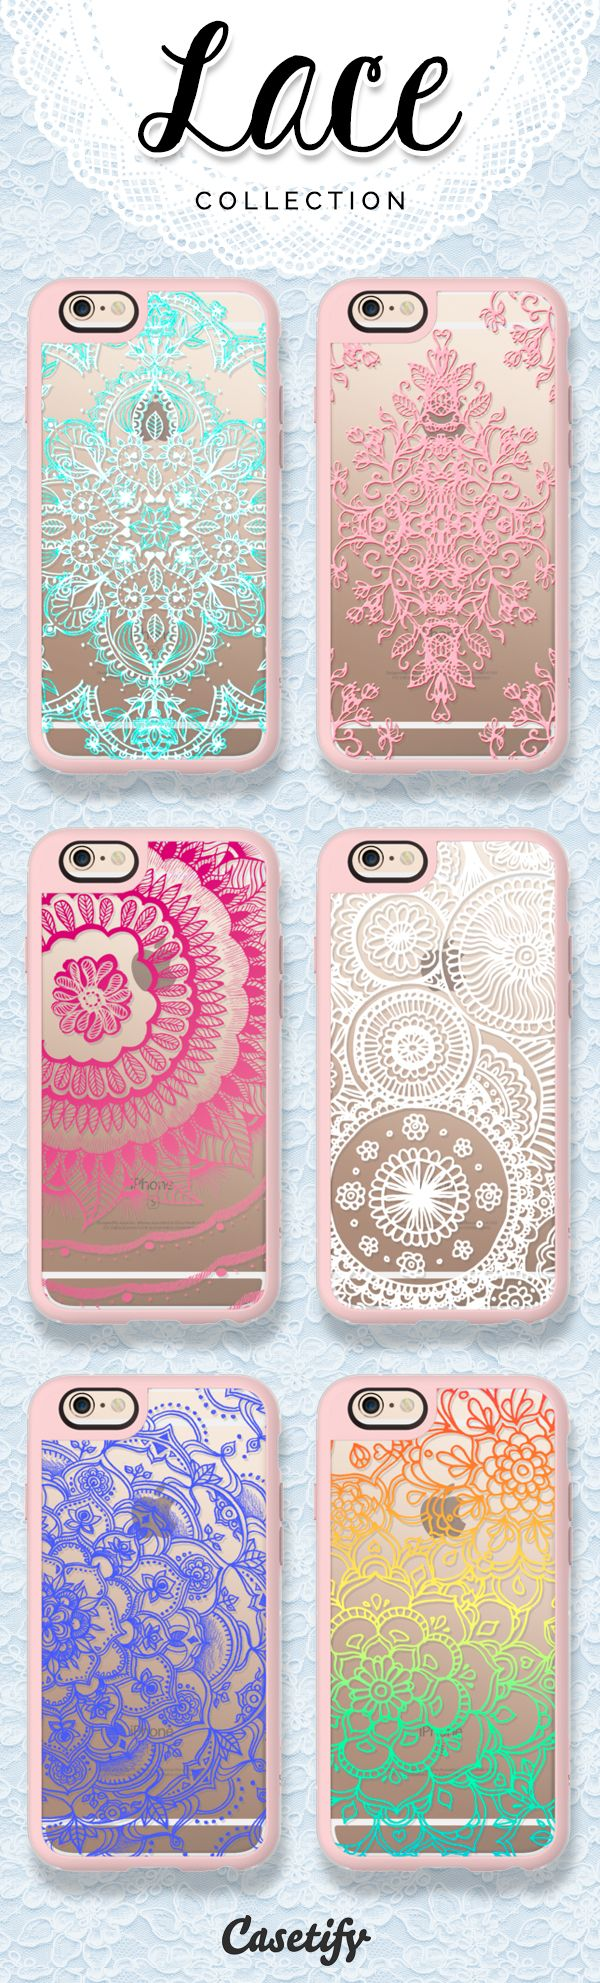 Love for lace! Check out our Lace collection now!   https://www.casetify.com/collections/lace#/   @casetify